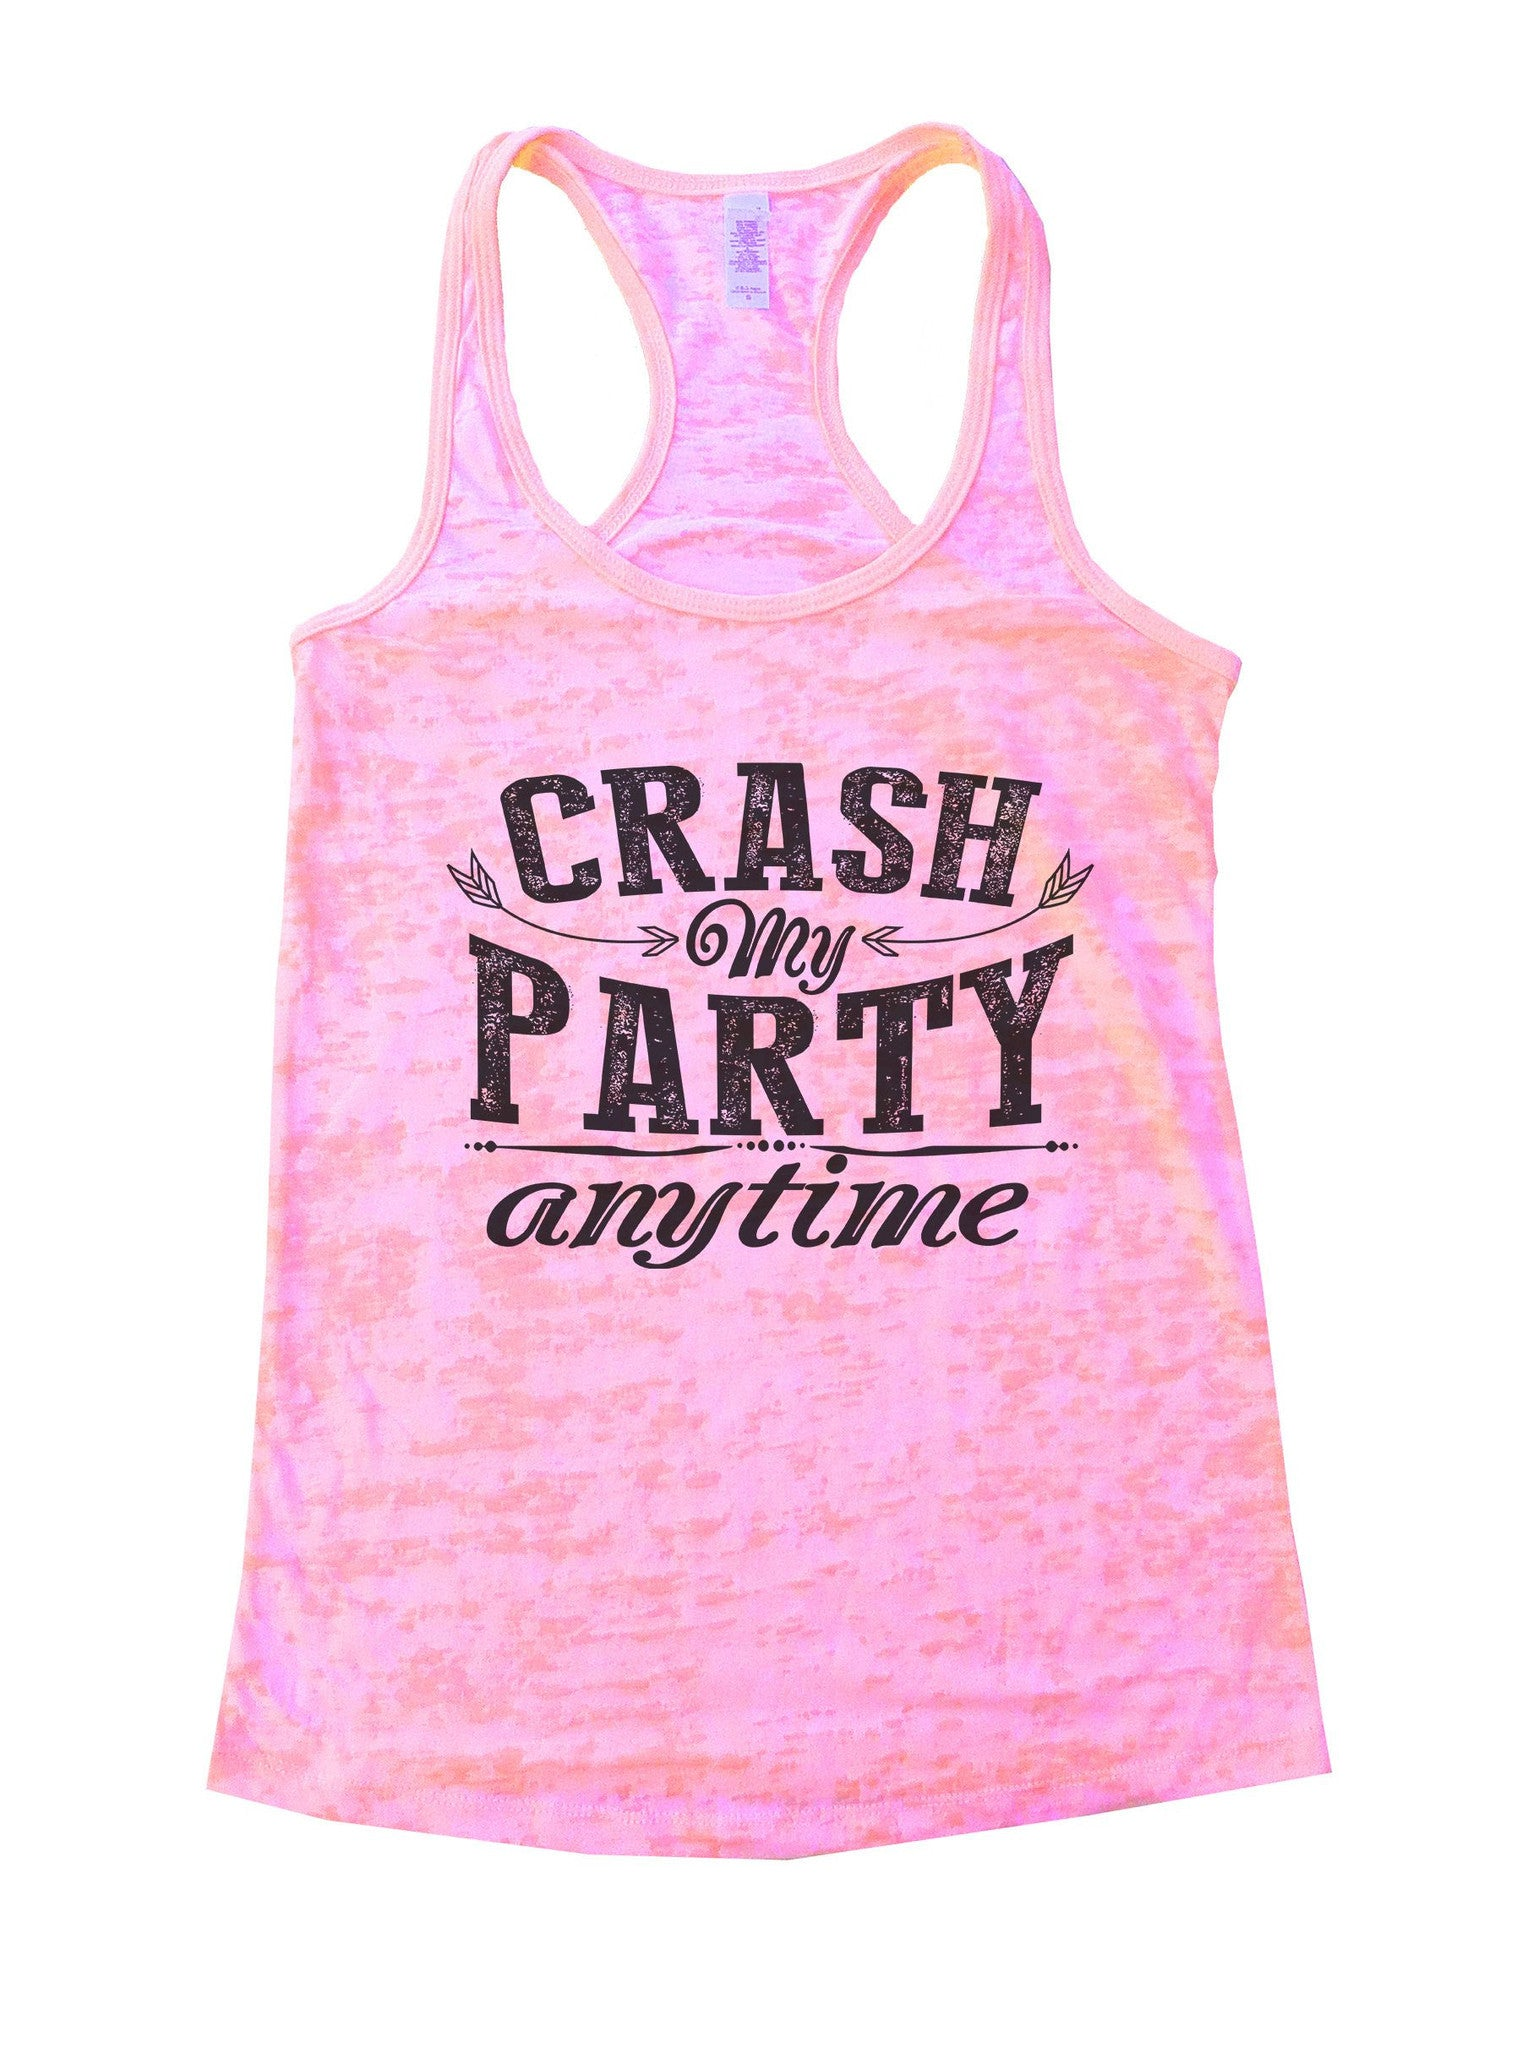 Crash My Party Anytime Burnout Tank Top By BurnoutTankTops.com - 980 - Funny Shirts Tank Tops Burnouts and Triblends  - 2